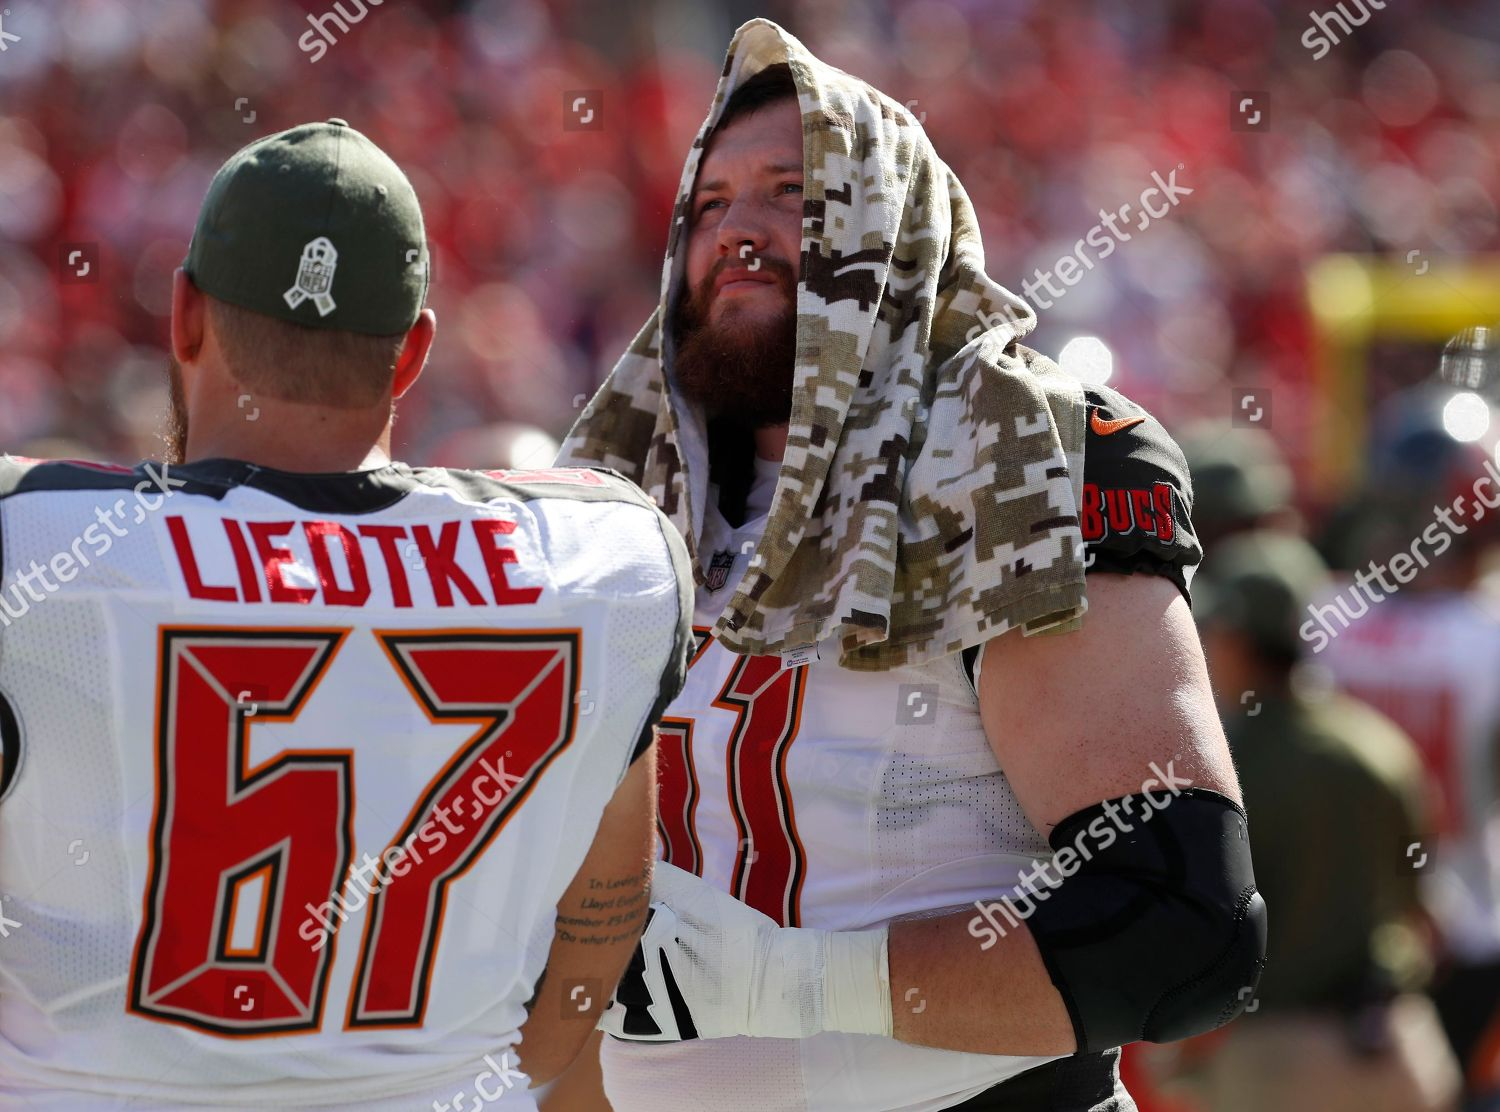 new styles 11665 c9790 Tampa Bay Buccaneers offensive tackle Leonard Wester ...